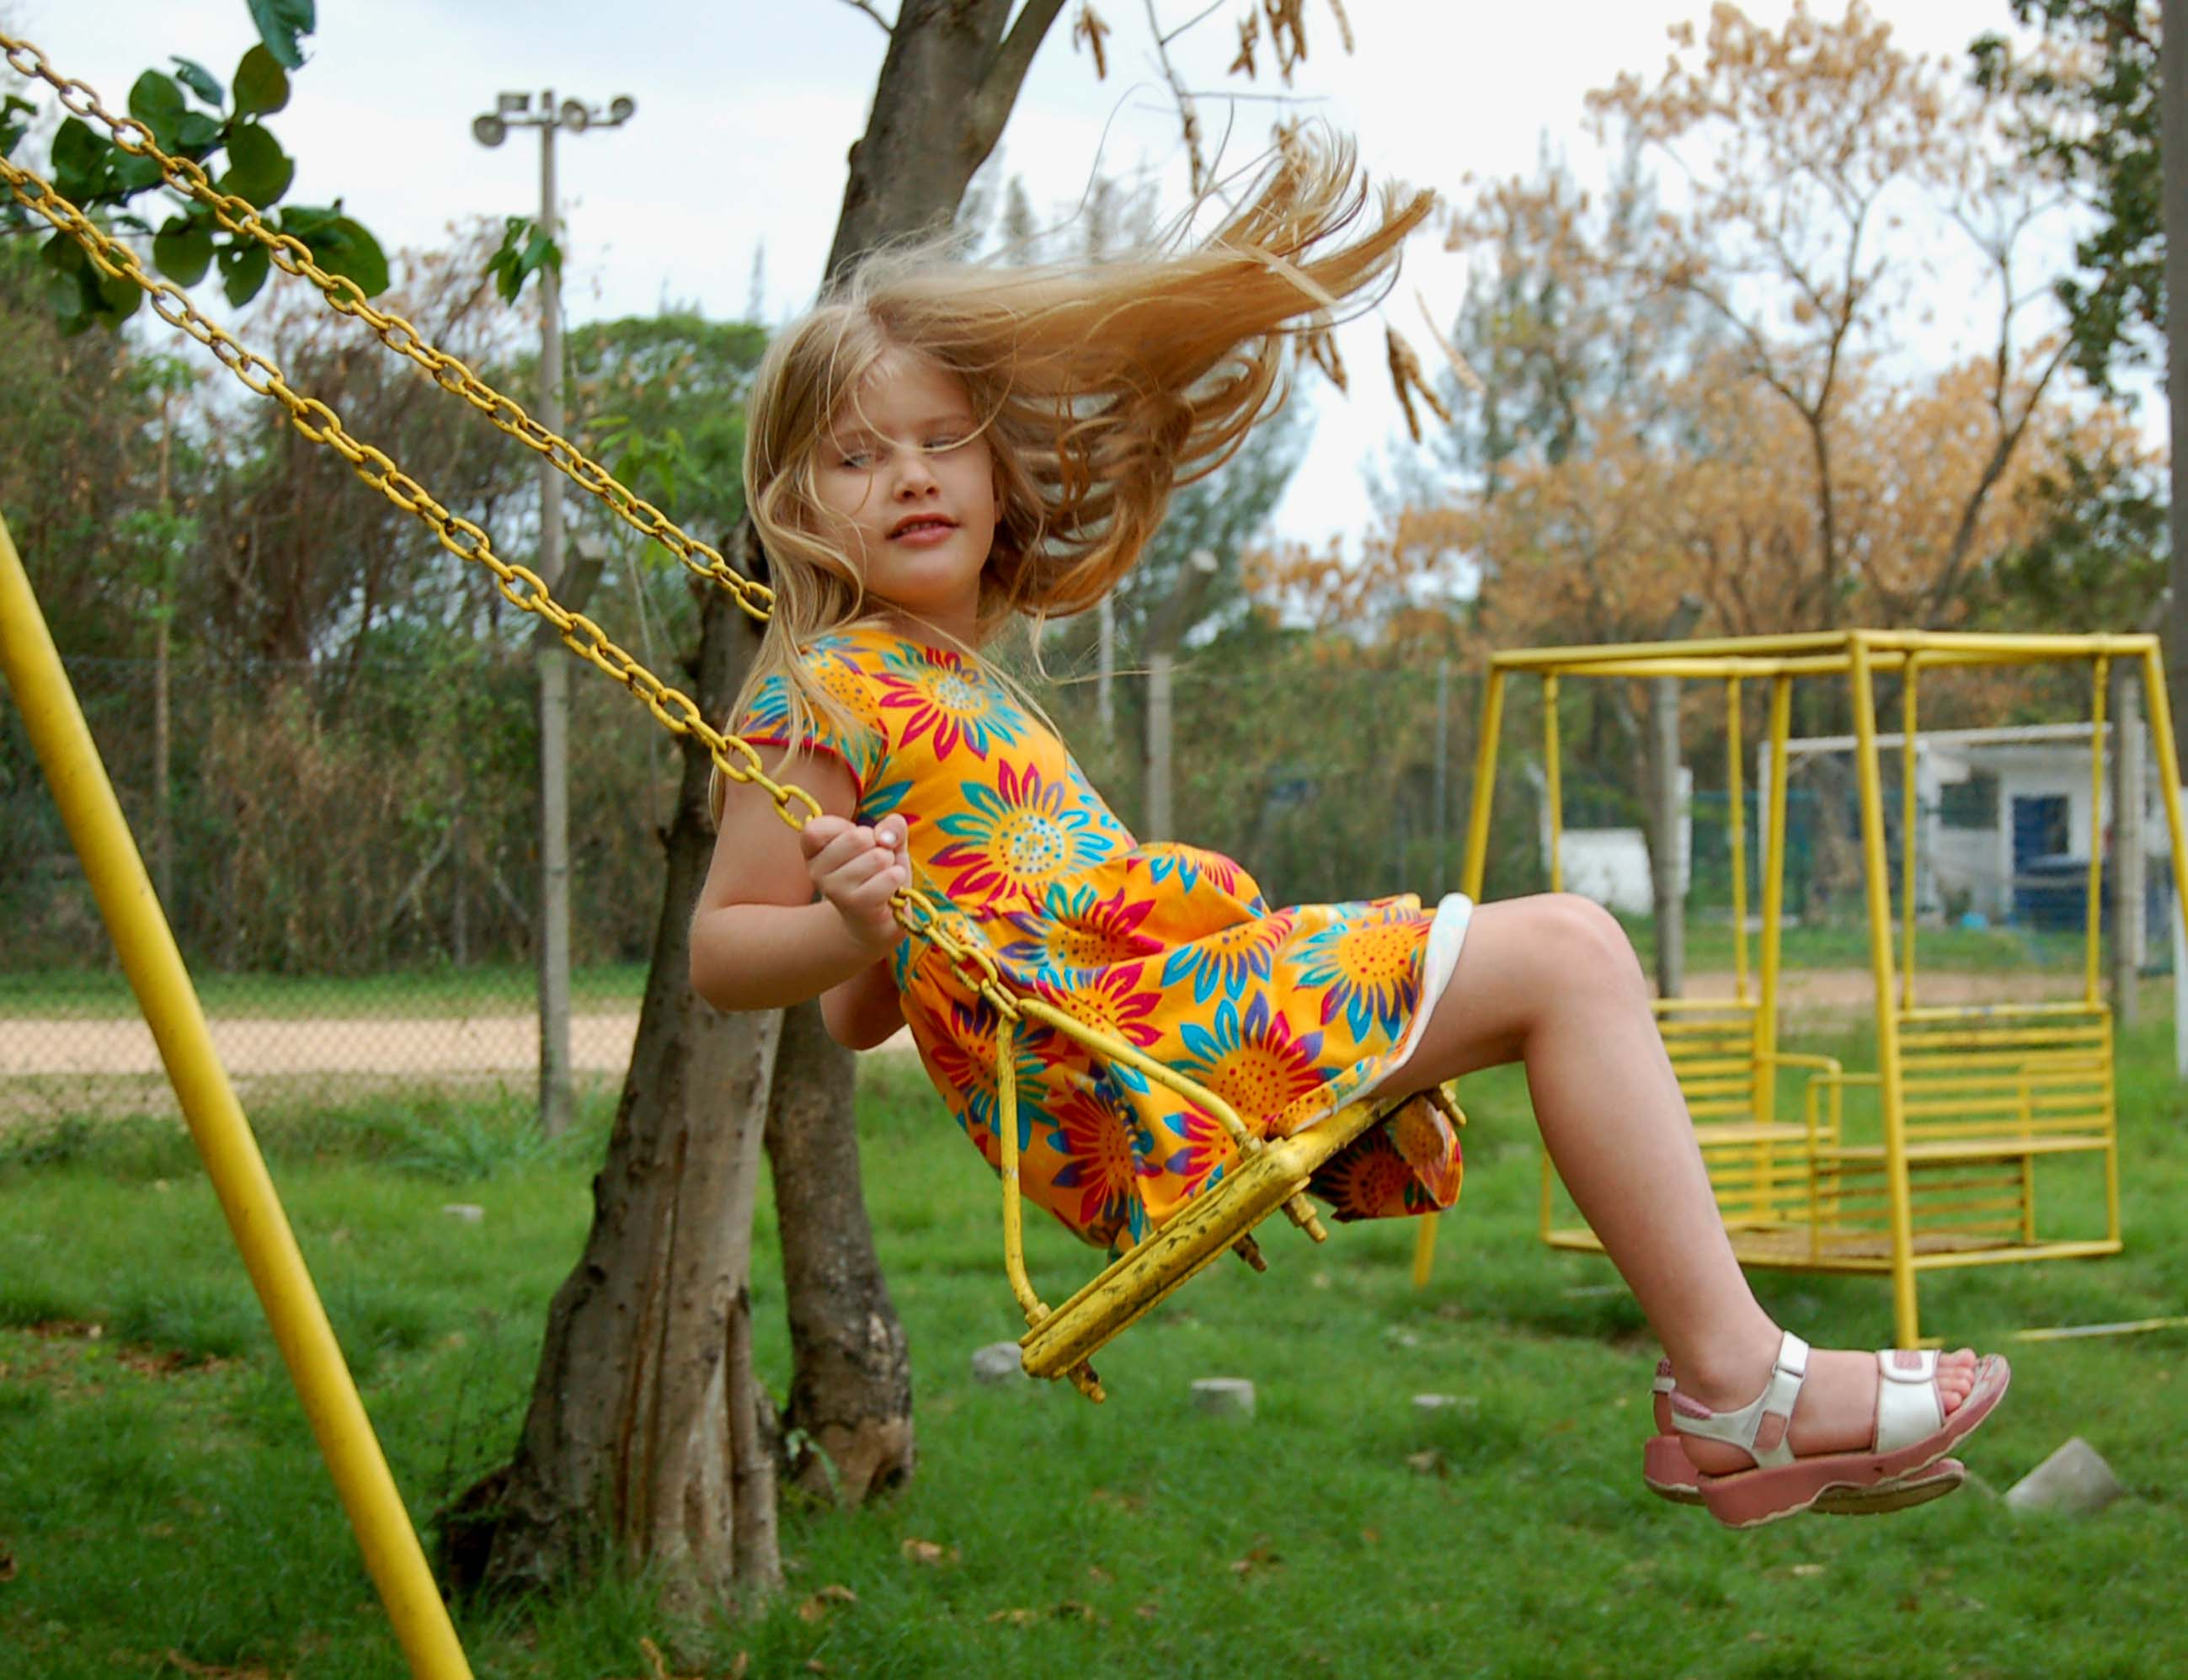 What Is The Word For Swings In Spanish Spanishdict Answers